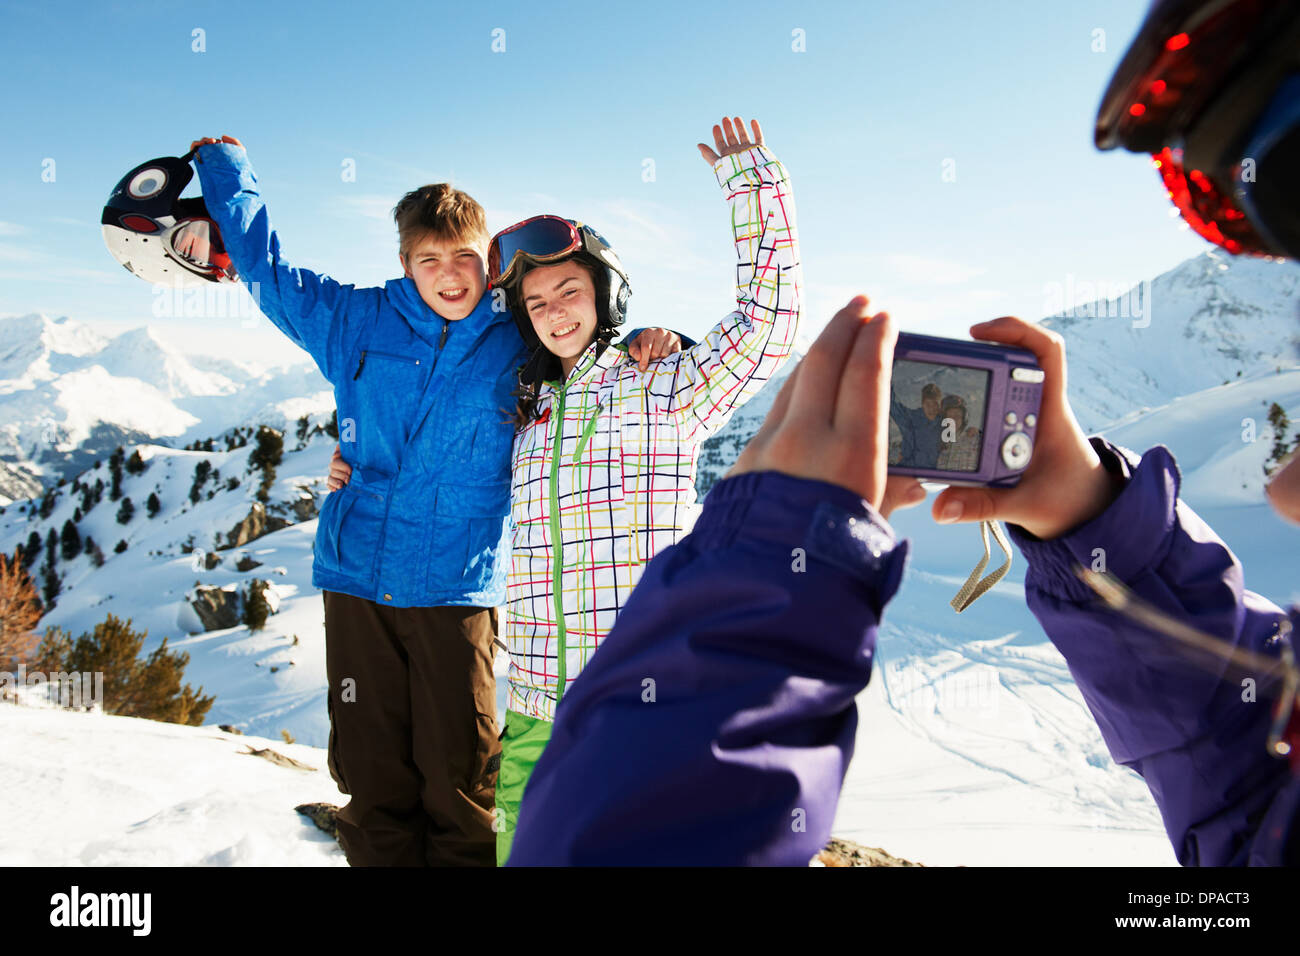 Girl photographing siblings, Les Arcs, Haute-Savoie, France - Stock Image